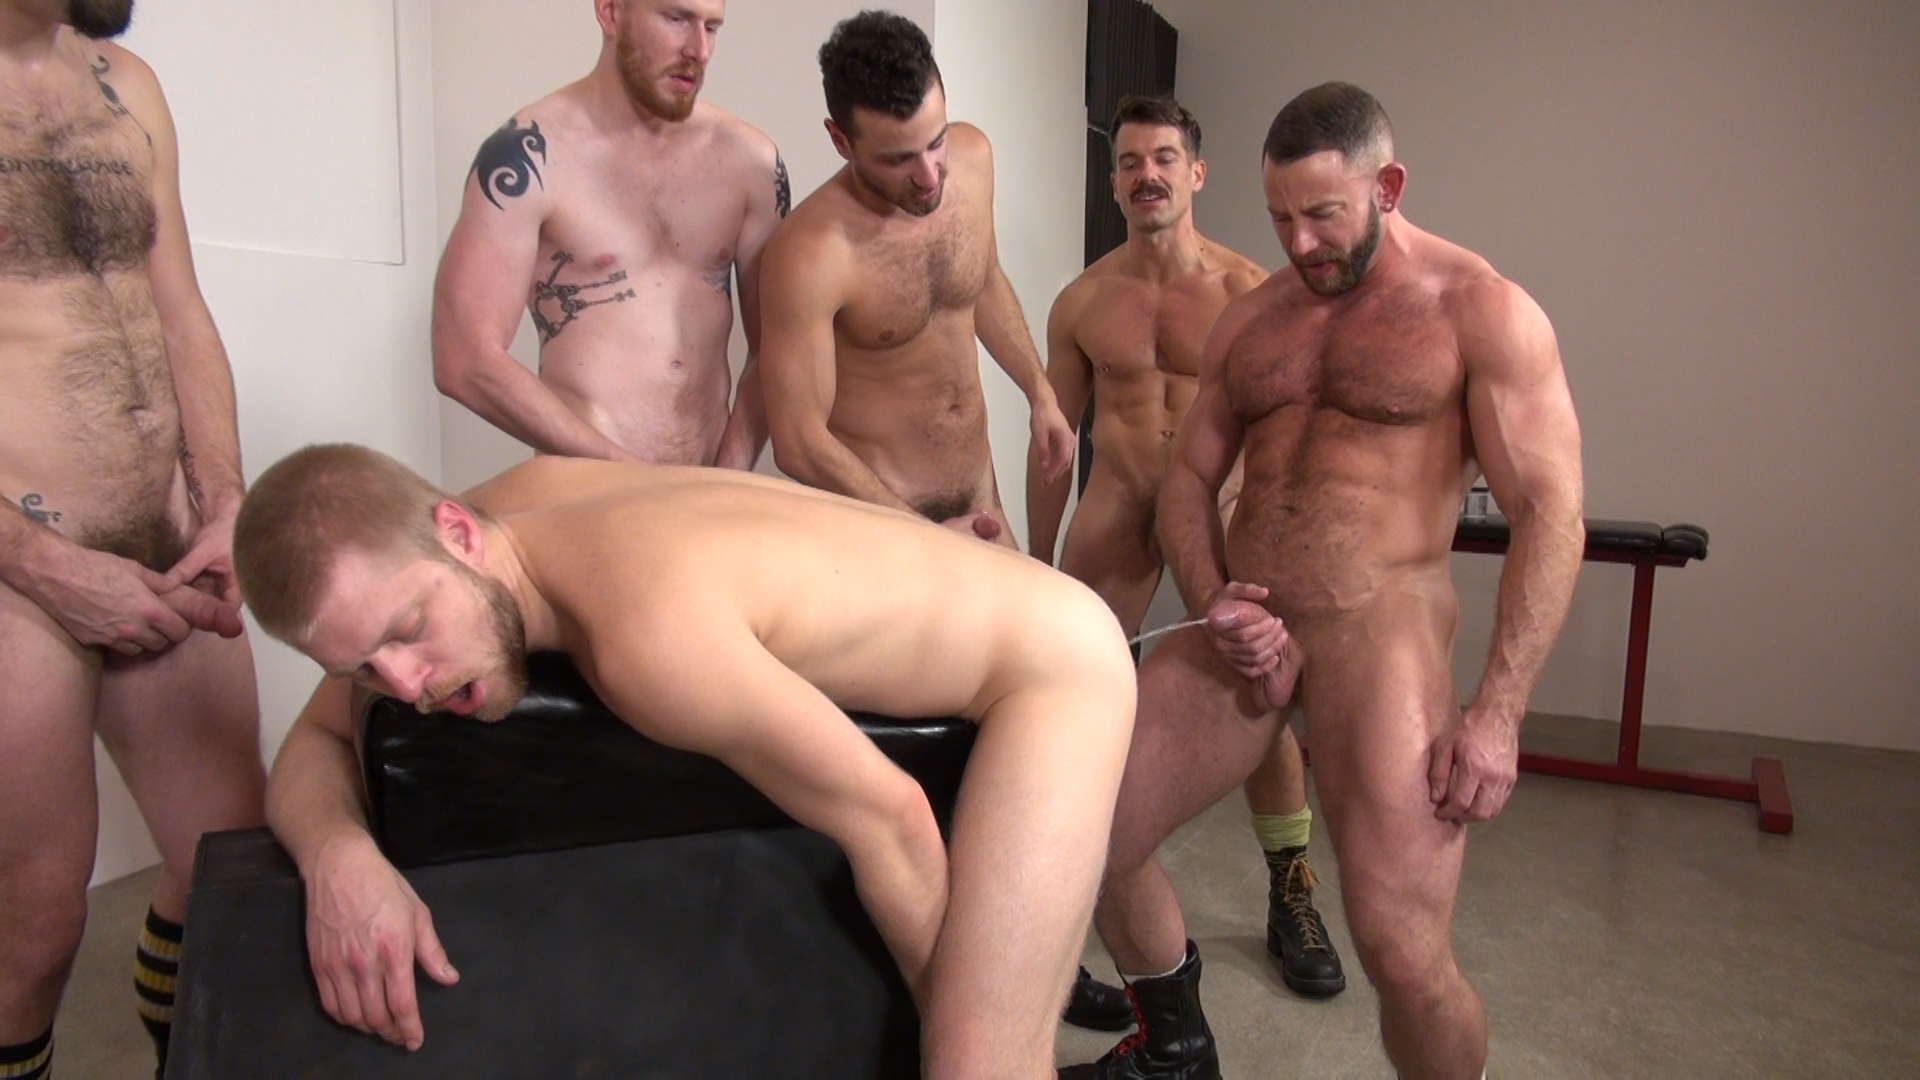 Hairy men orgy share your